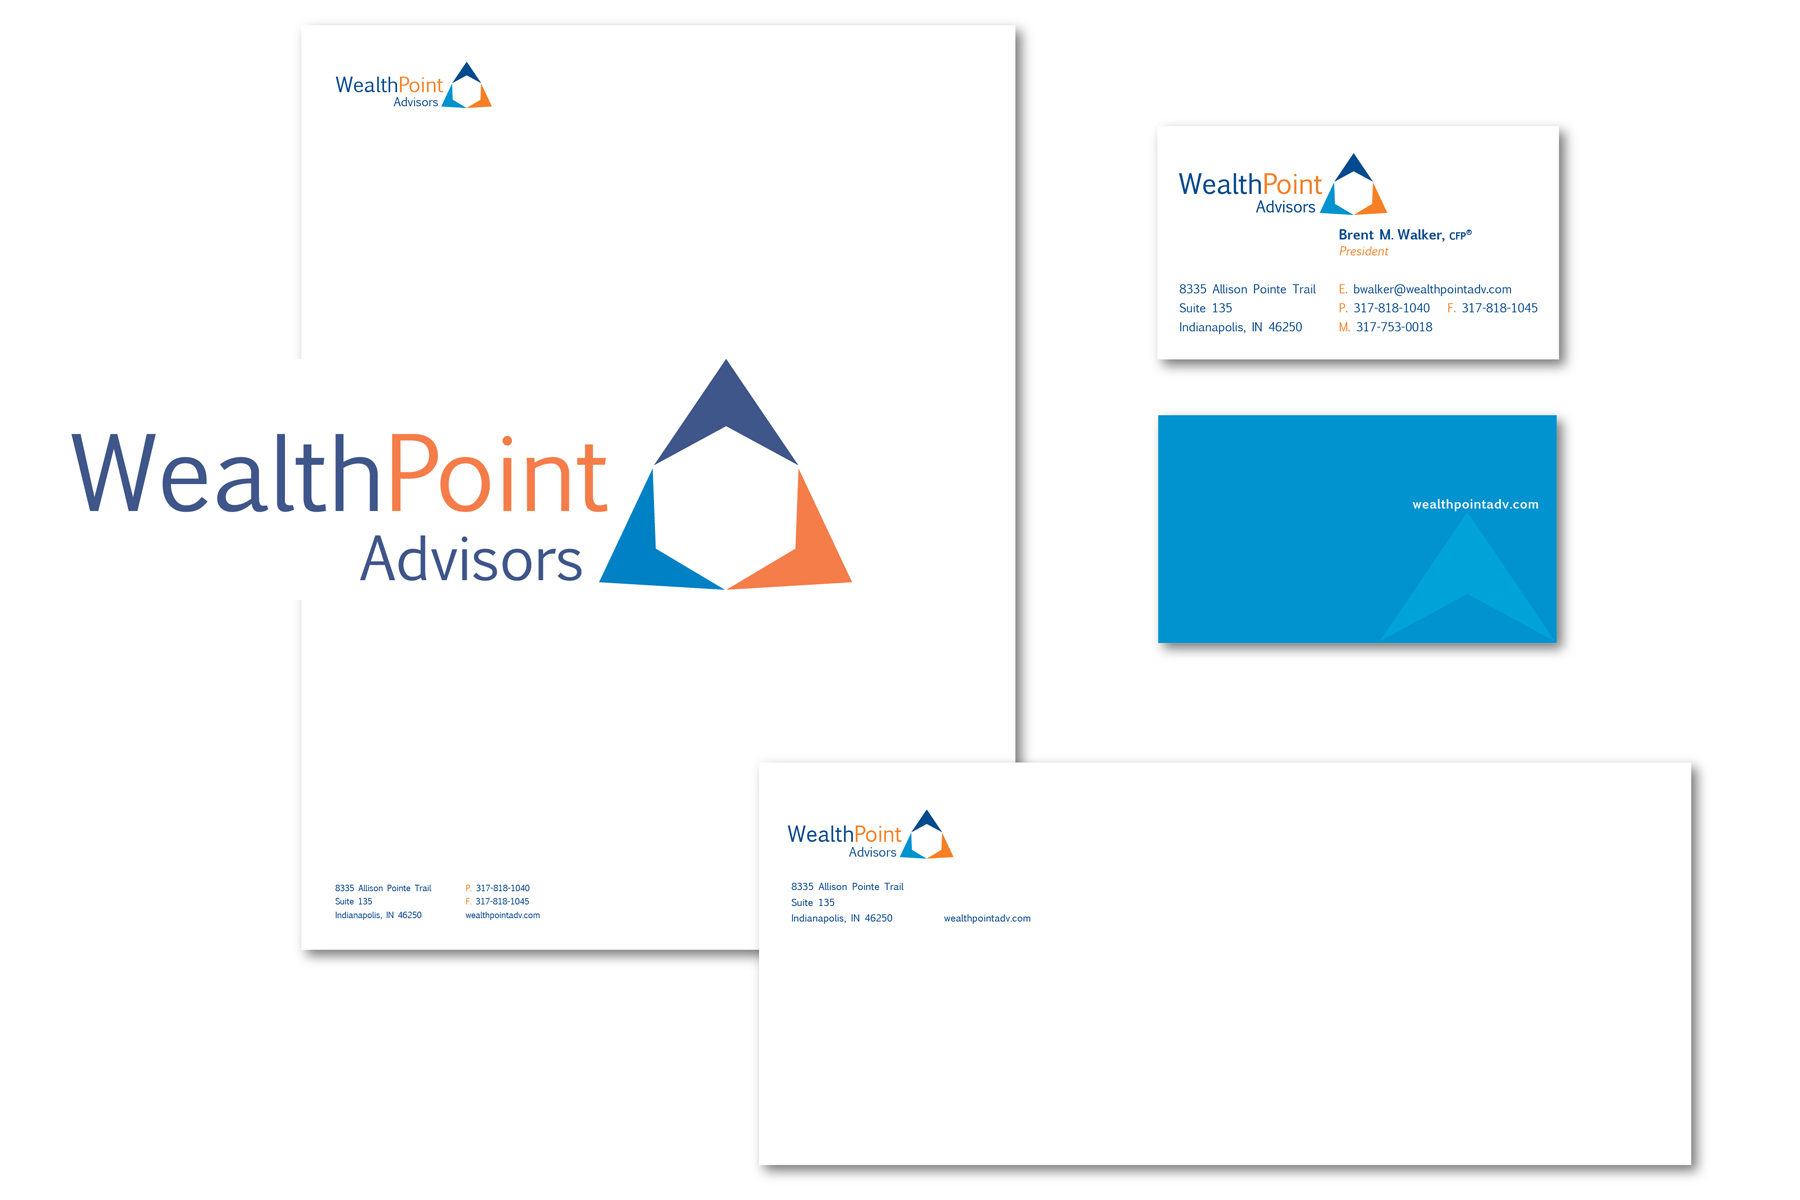 WeatlhPoint Advisors